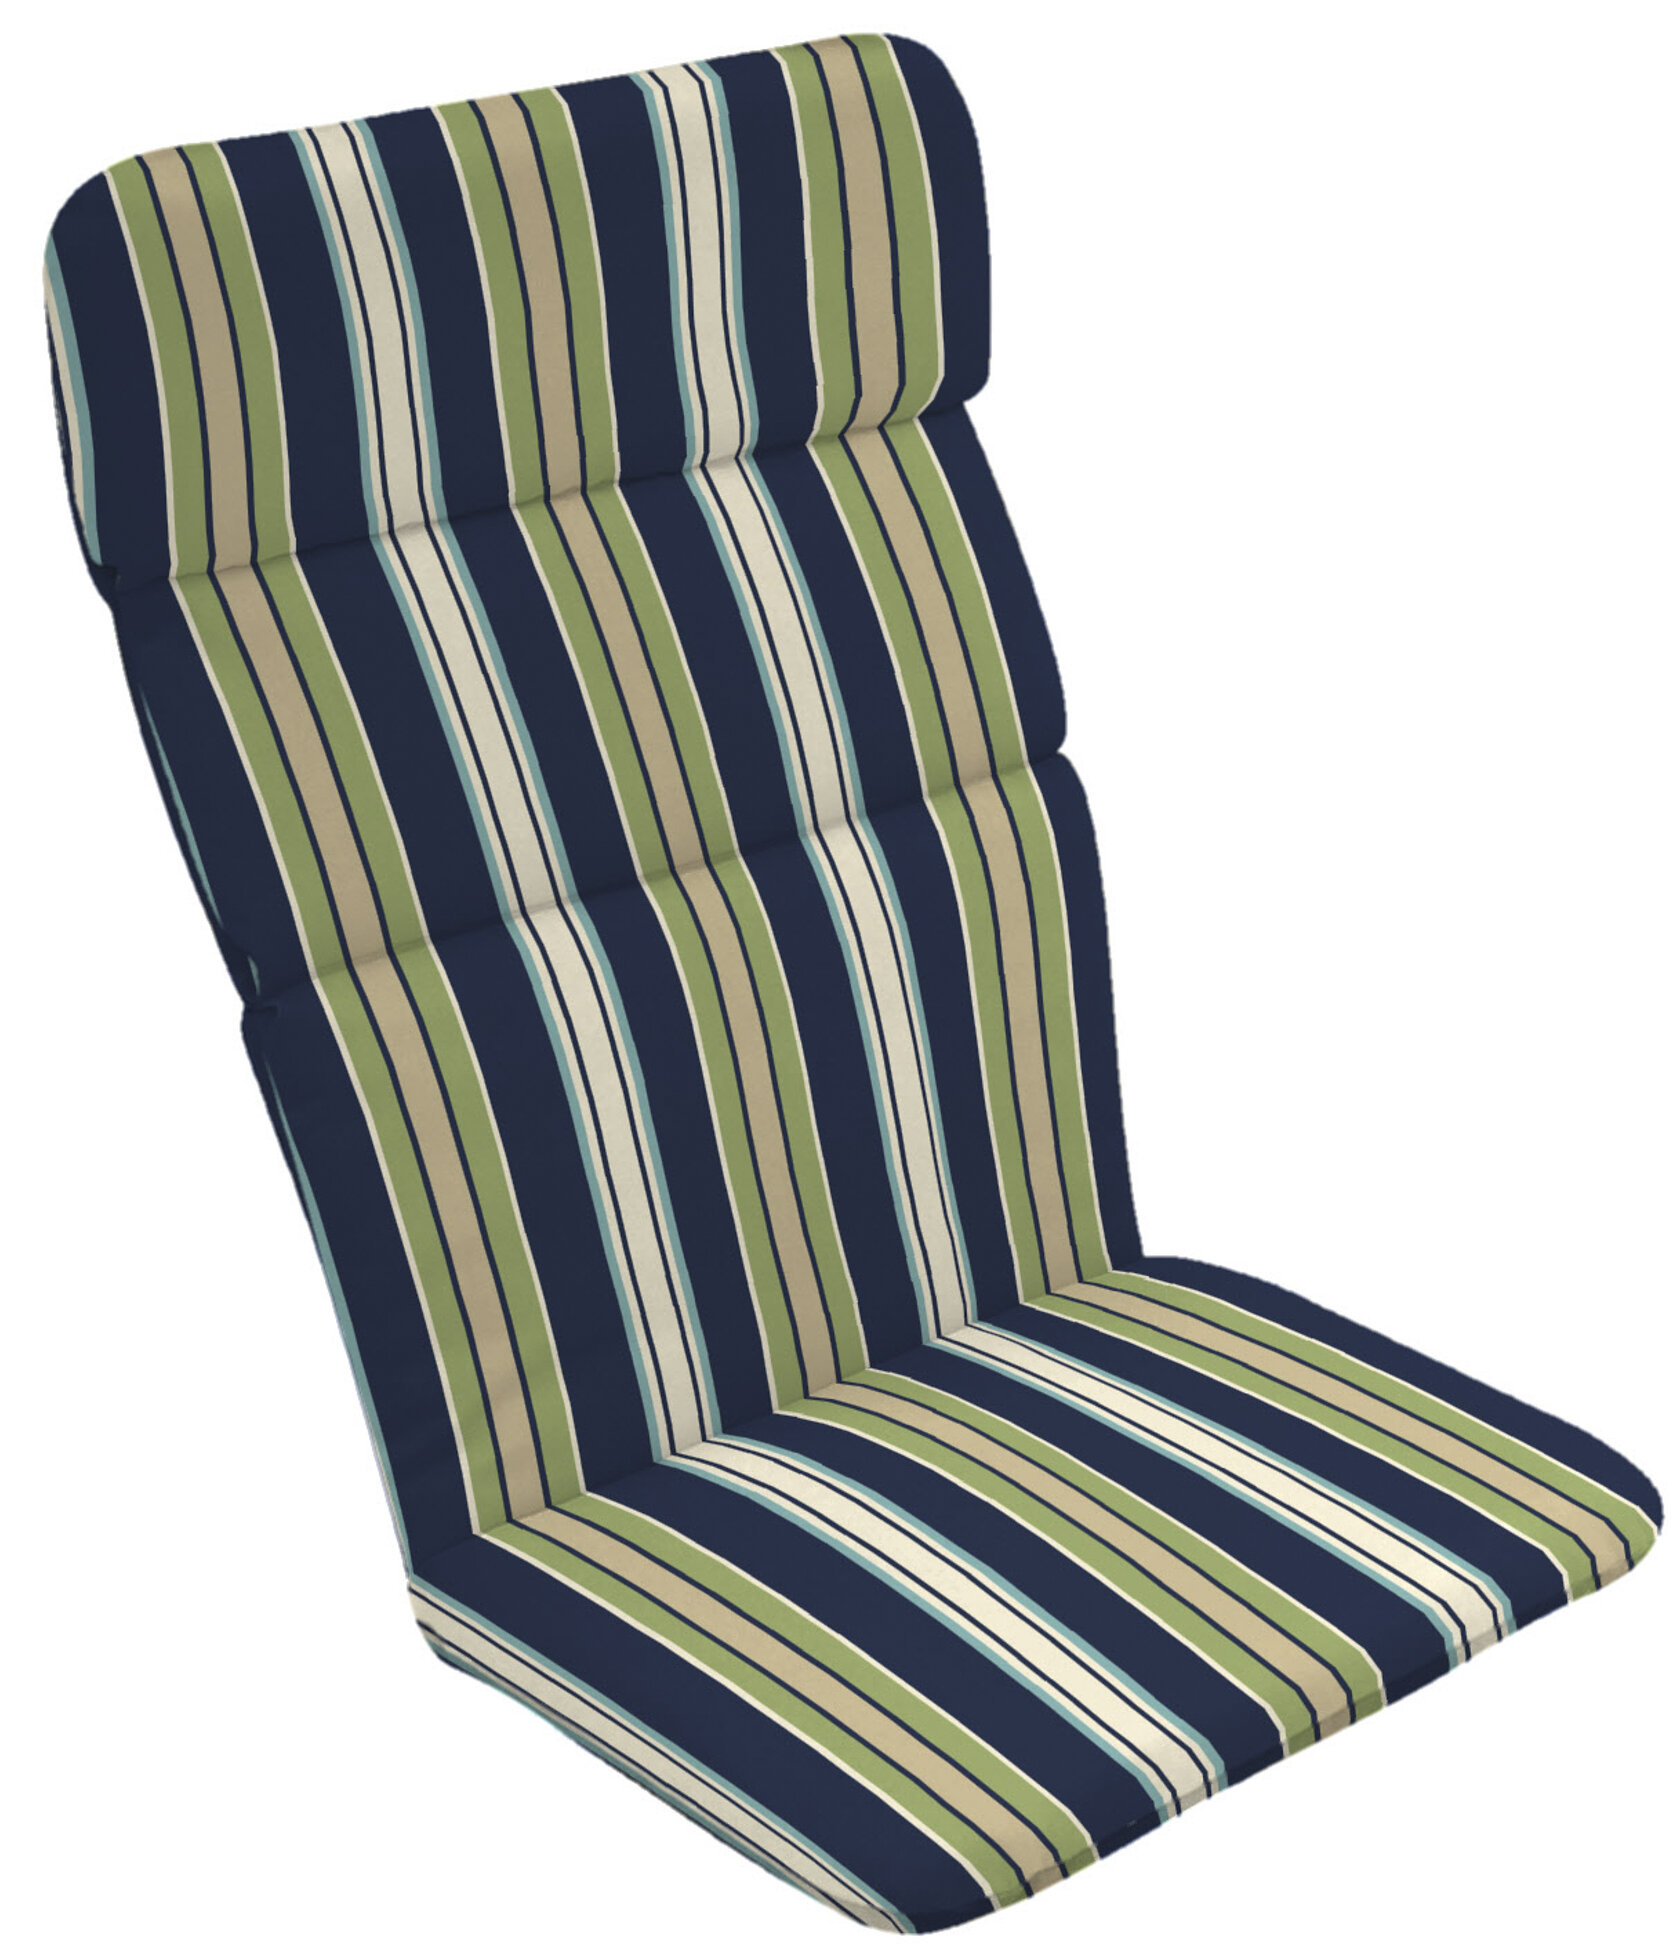 Rosecliff Heights Stripe Outdoor Adirondack Chair Cushion | Wayfair